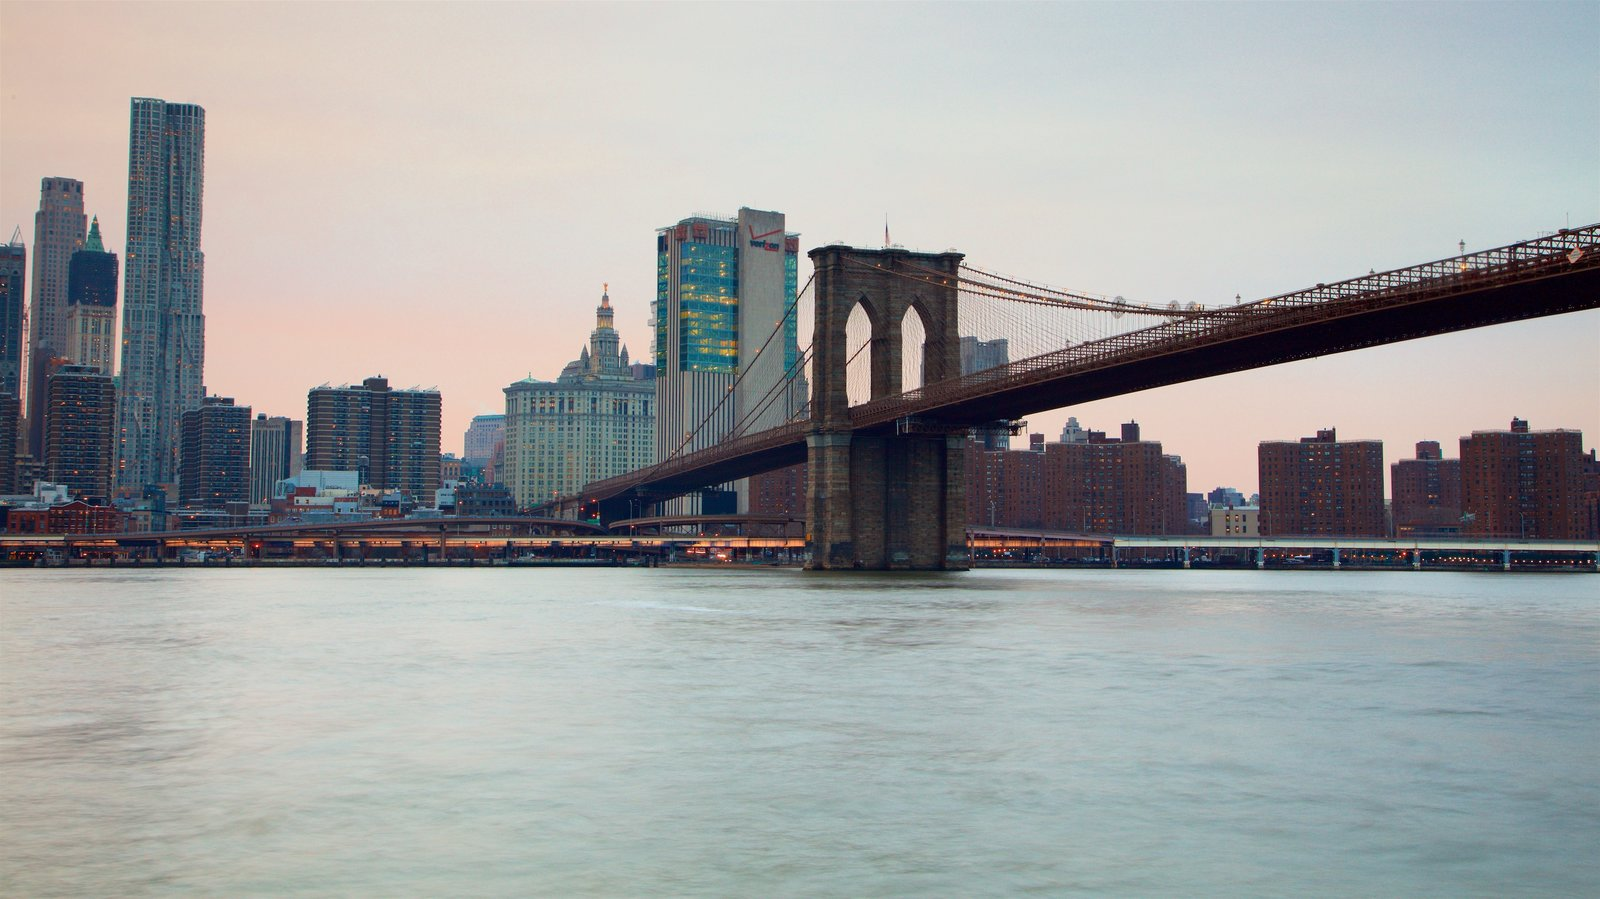 Sunset sunrise pictures view images of brooklyn bridge park brooklyn bridge park which includes a river or creek a sunset and a bridge malvernweather Gallery